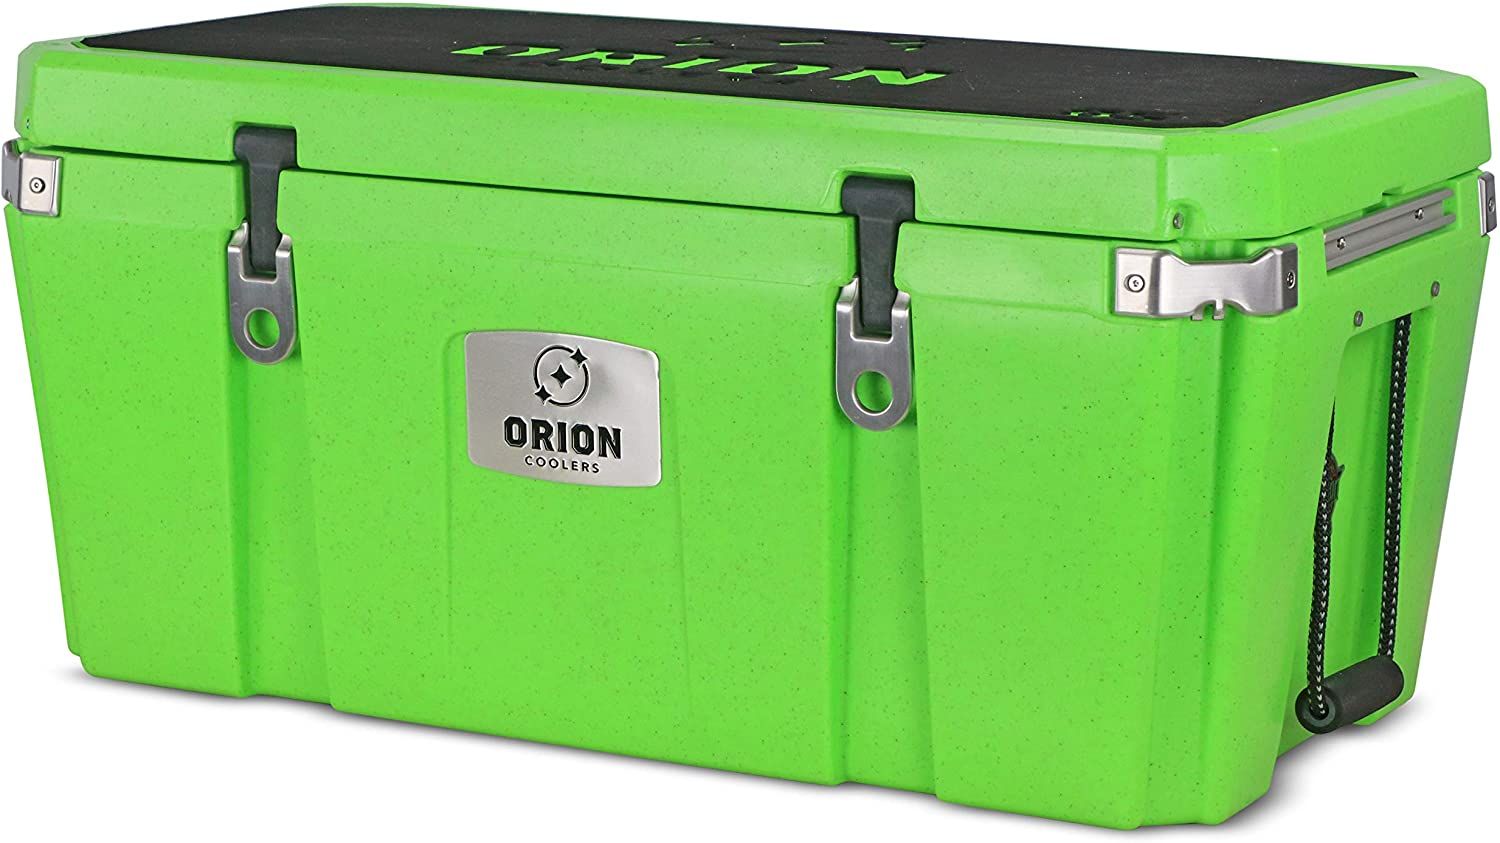 Orion Heavy Duty Premium Cooler (85 Quart, Limestone), Durable Insulated Outdoor Ice Chest for Maximum Cold Retention - Portable, Bear Resistant, and Long Lasting, Great for Hunting, Fishing, Camping